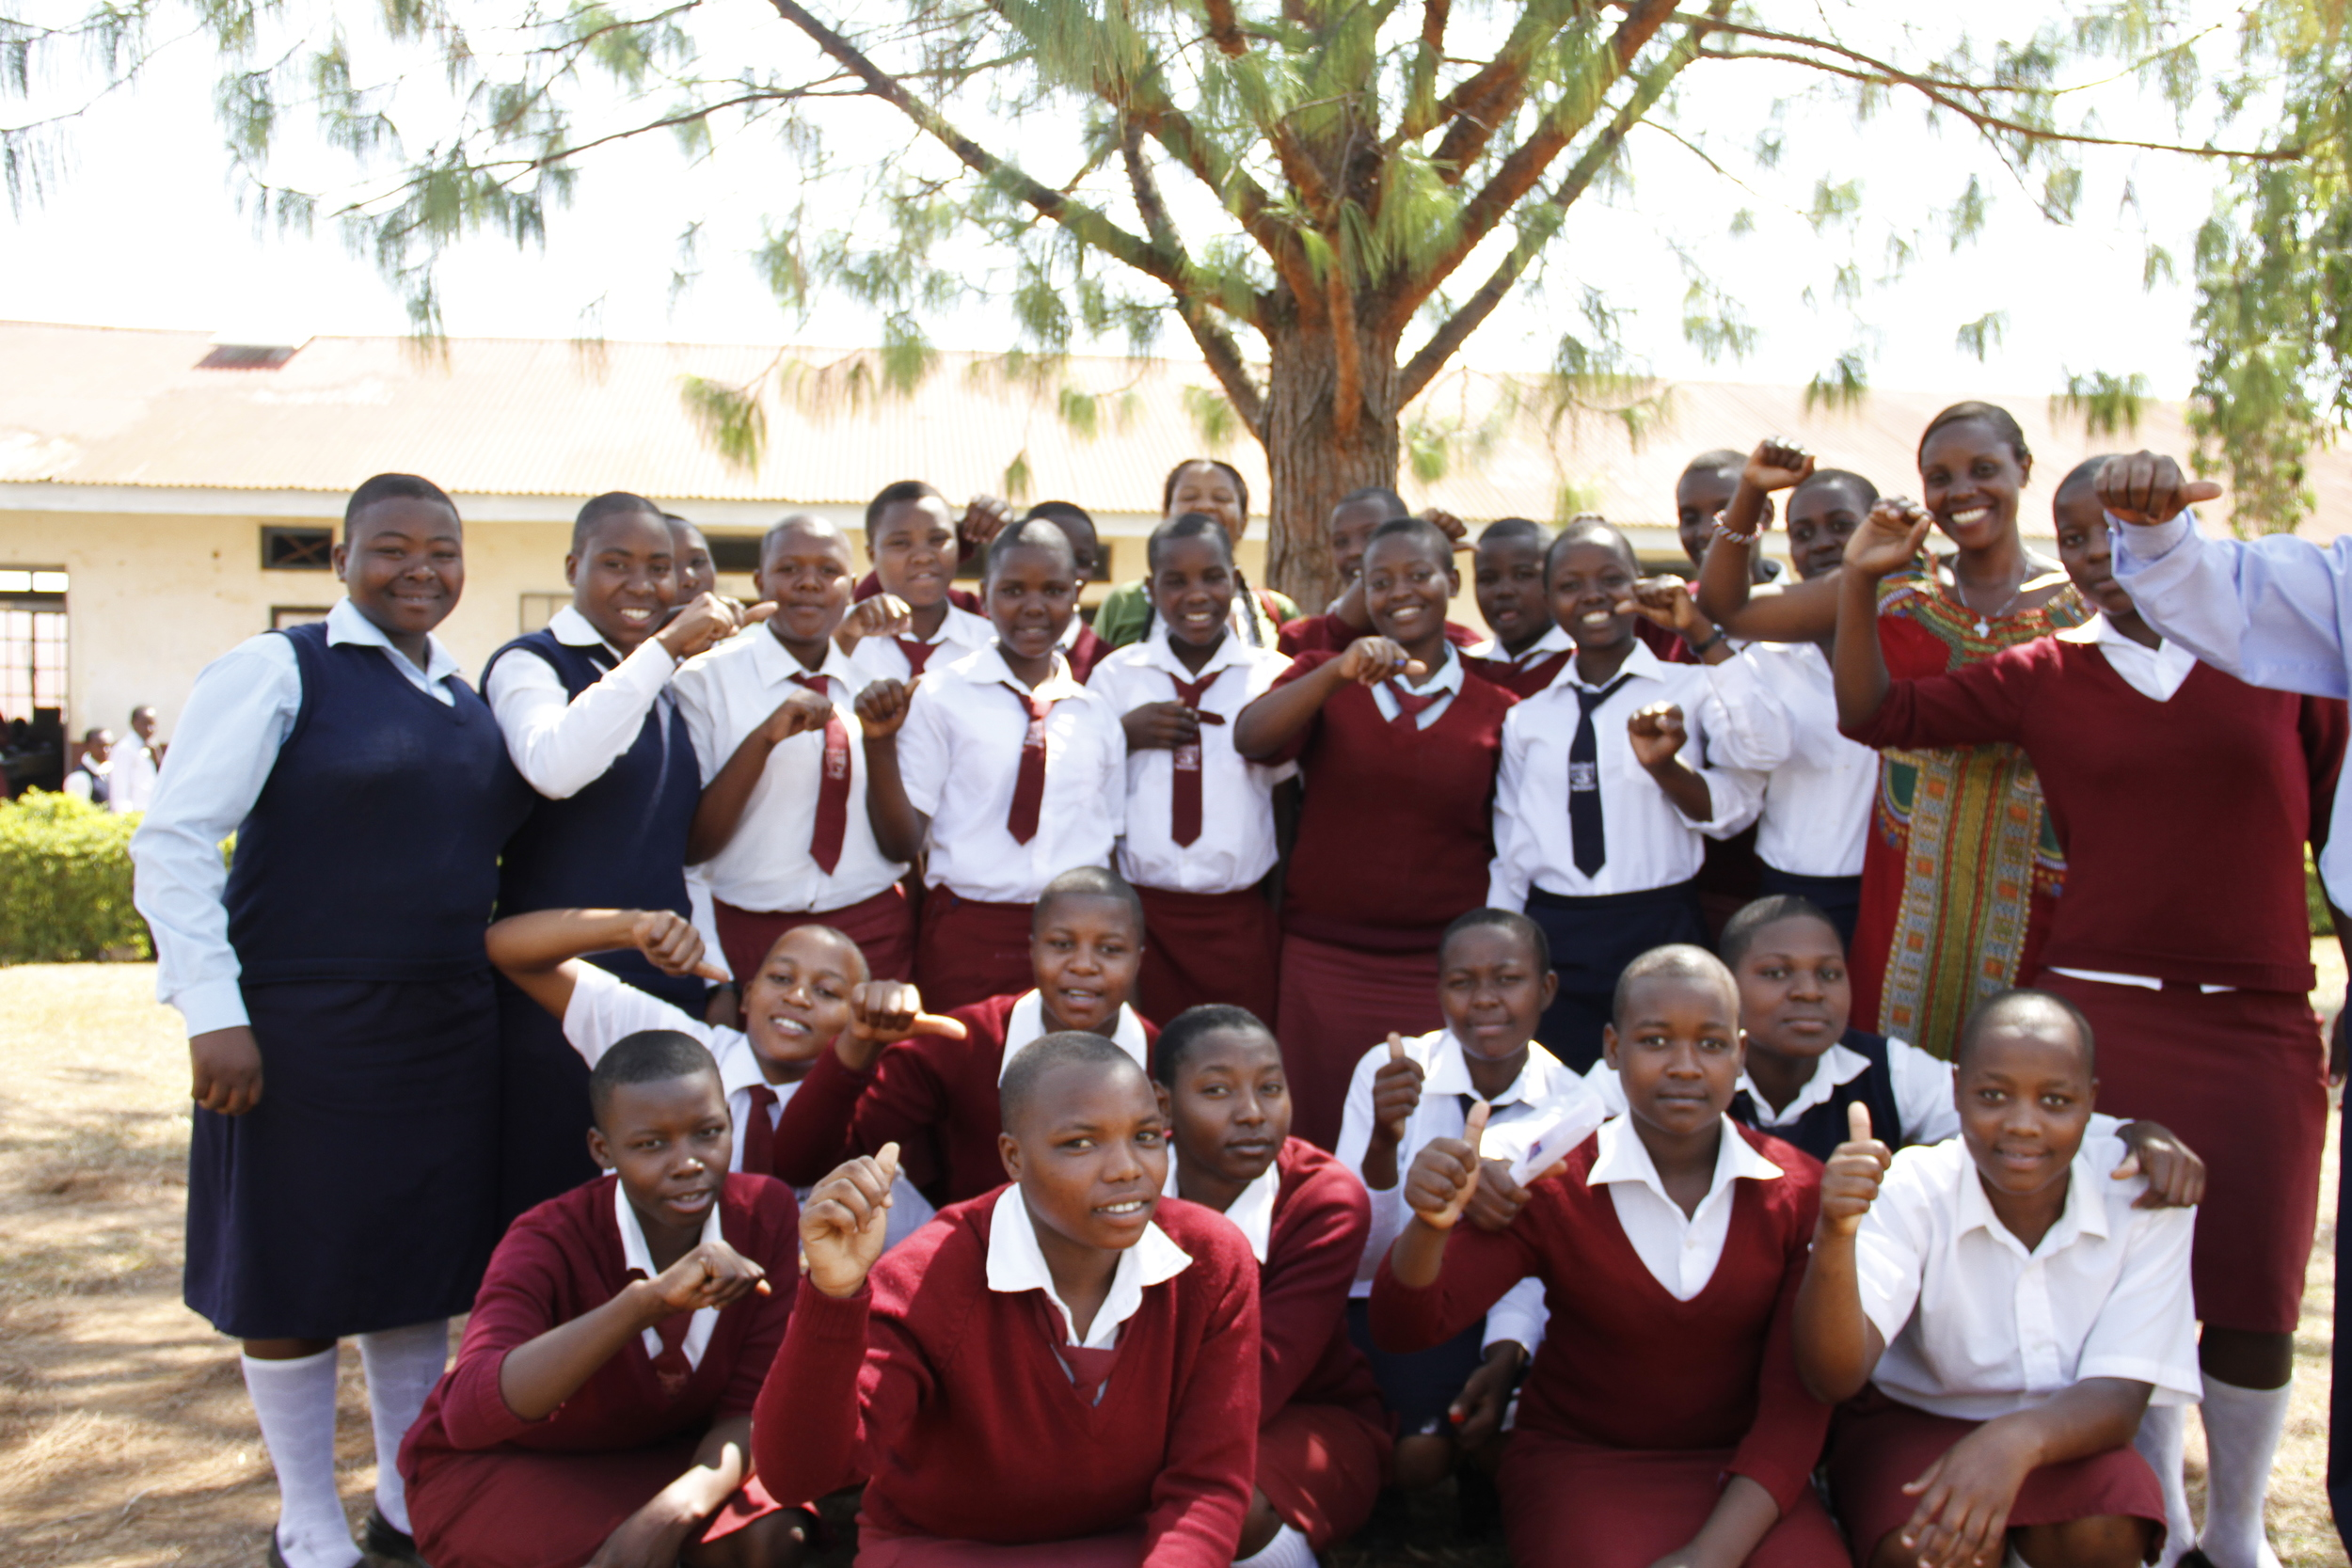 Honest with Girls to Lead Africa Club members at Kiinkiizi High School